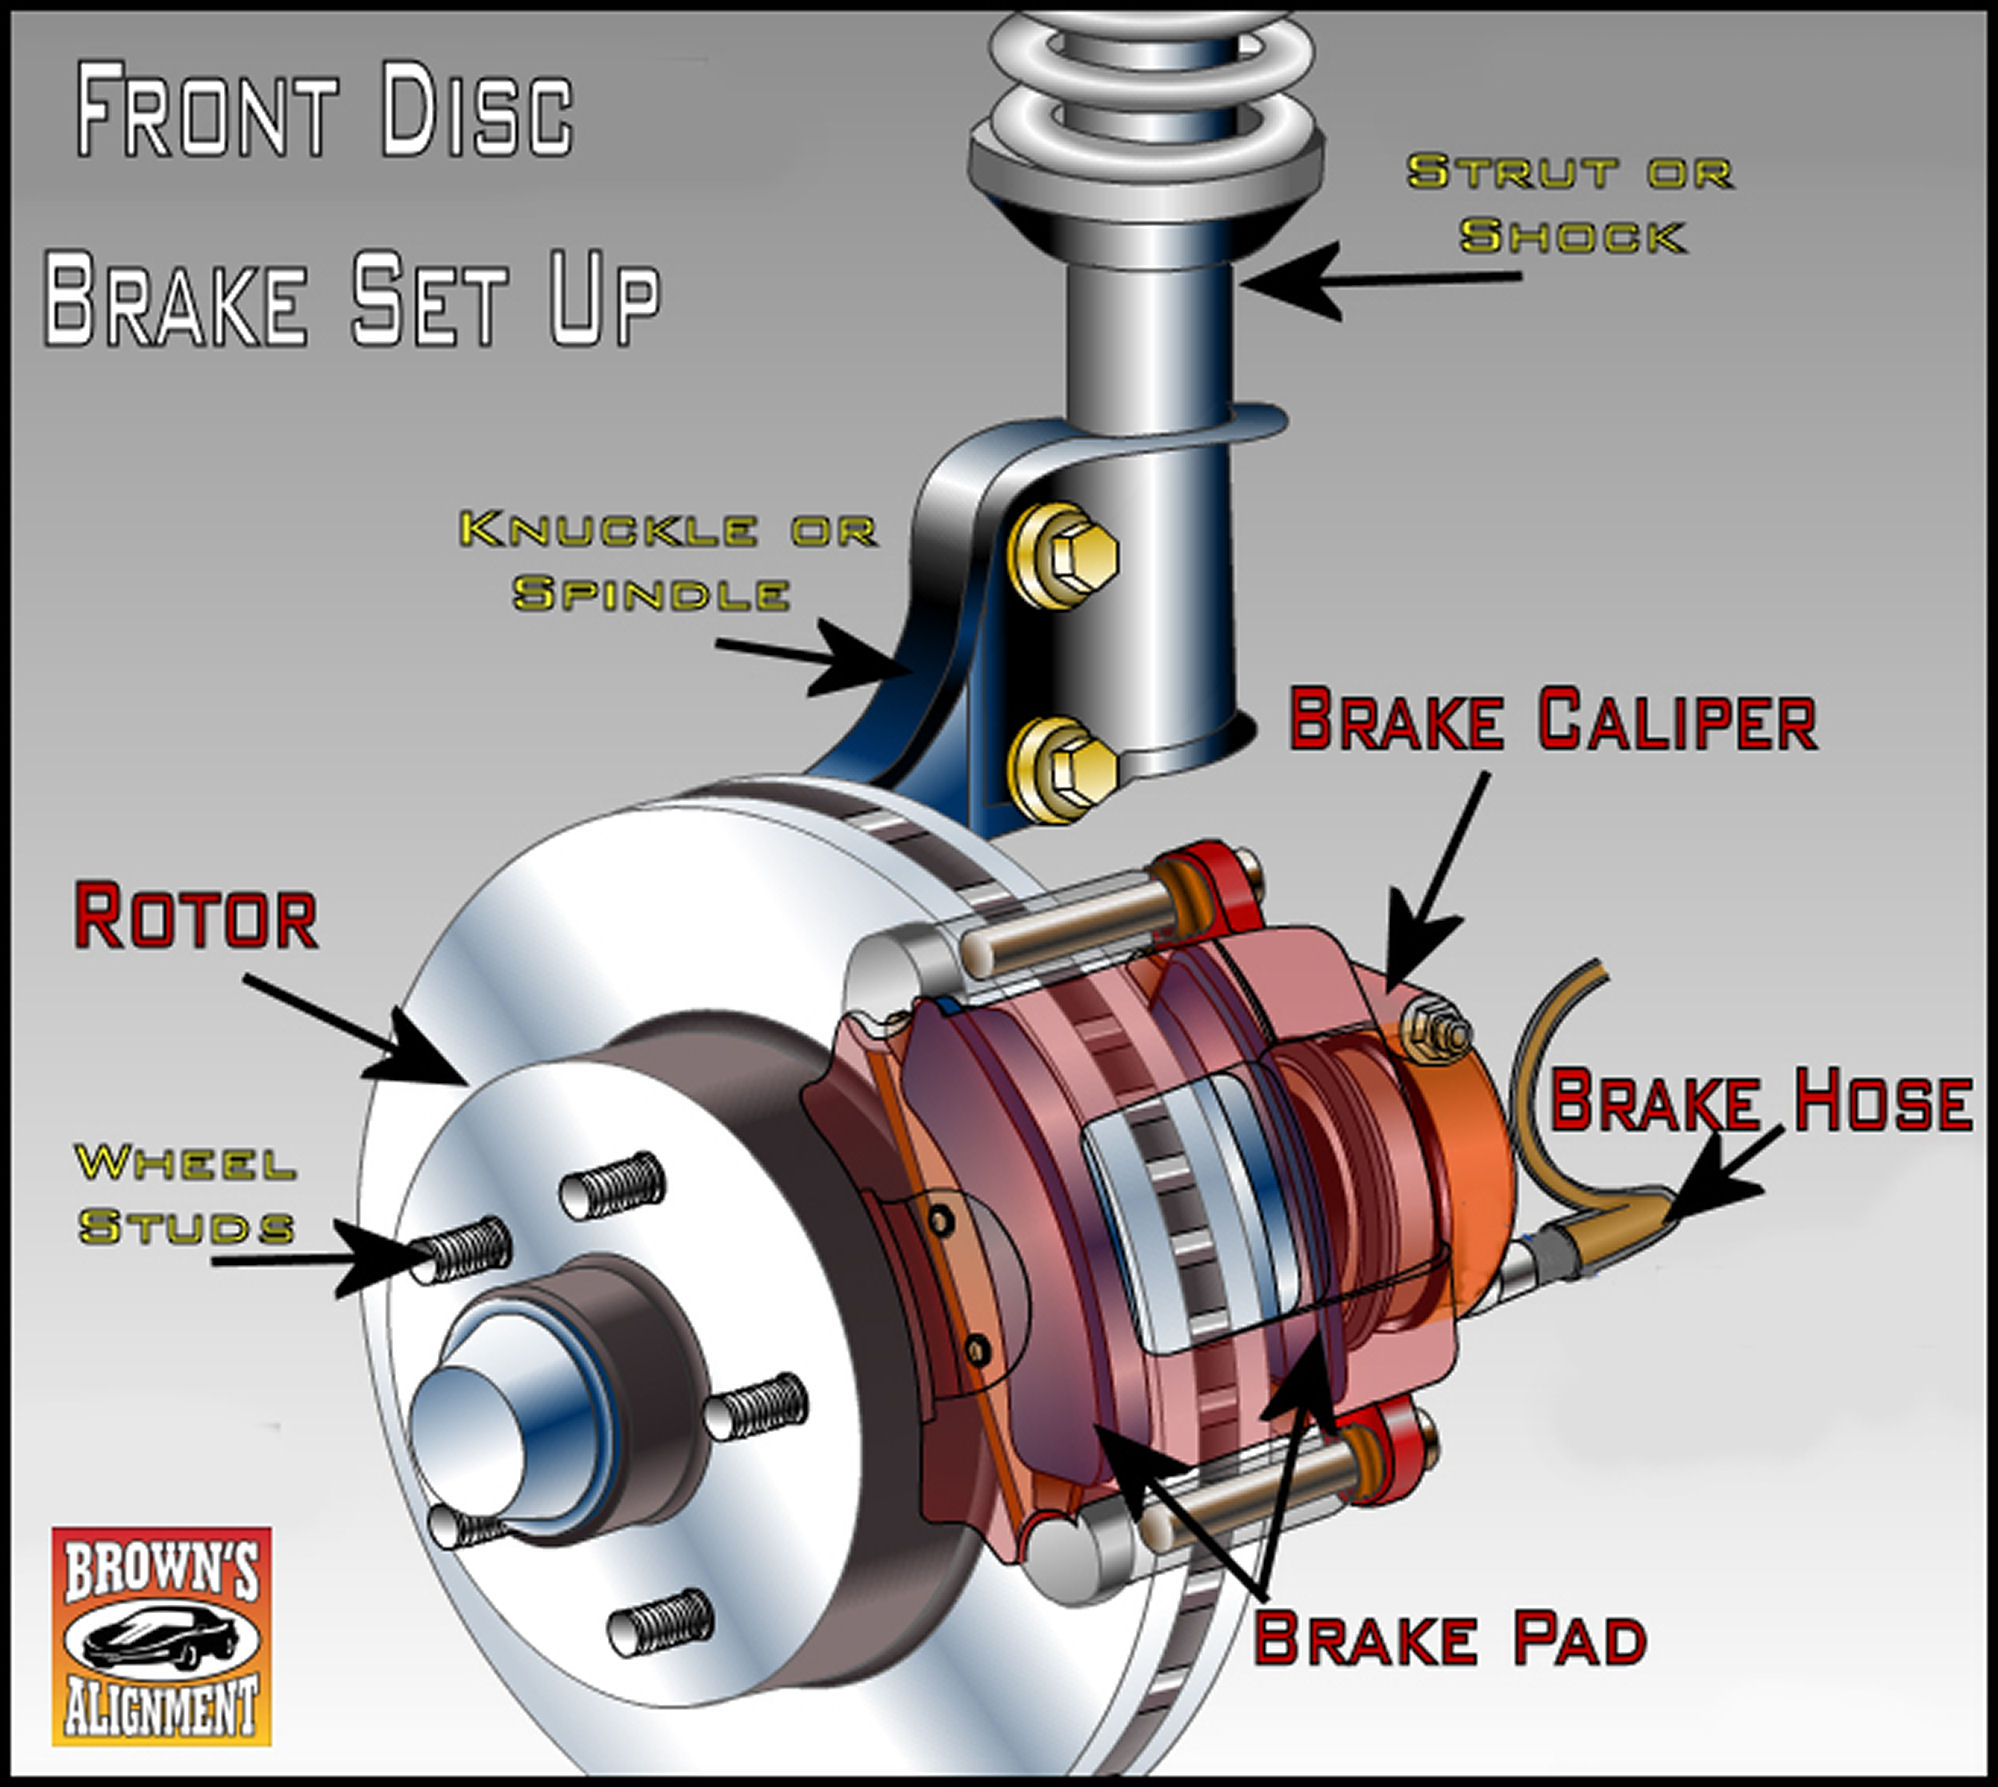 Complete Brake Repair Services Browns Alignment Auto Single Disc Brakerepair And Parts Replacement Diagram Setup Brakes